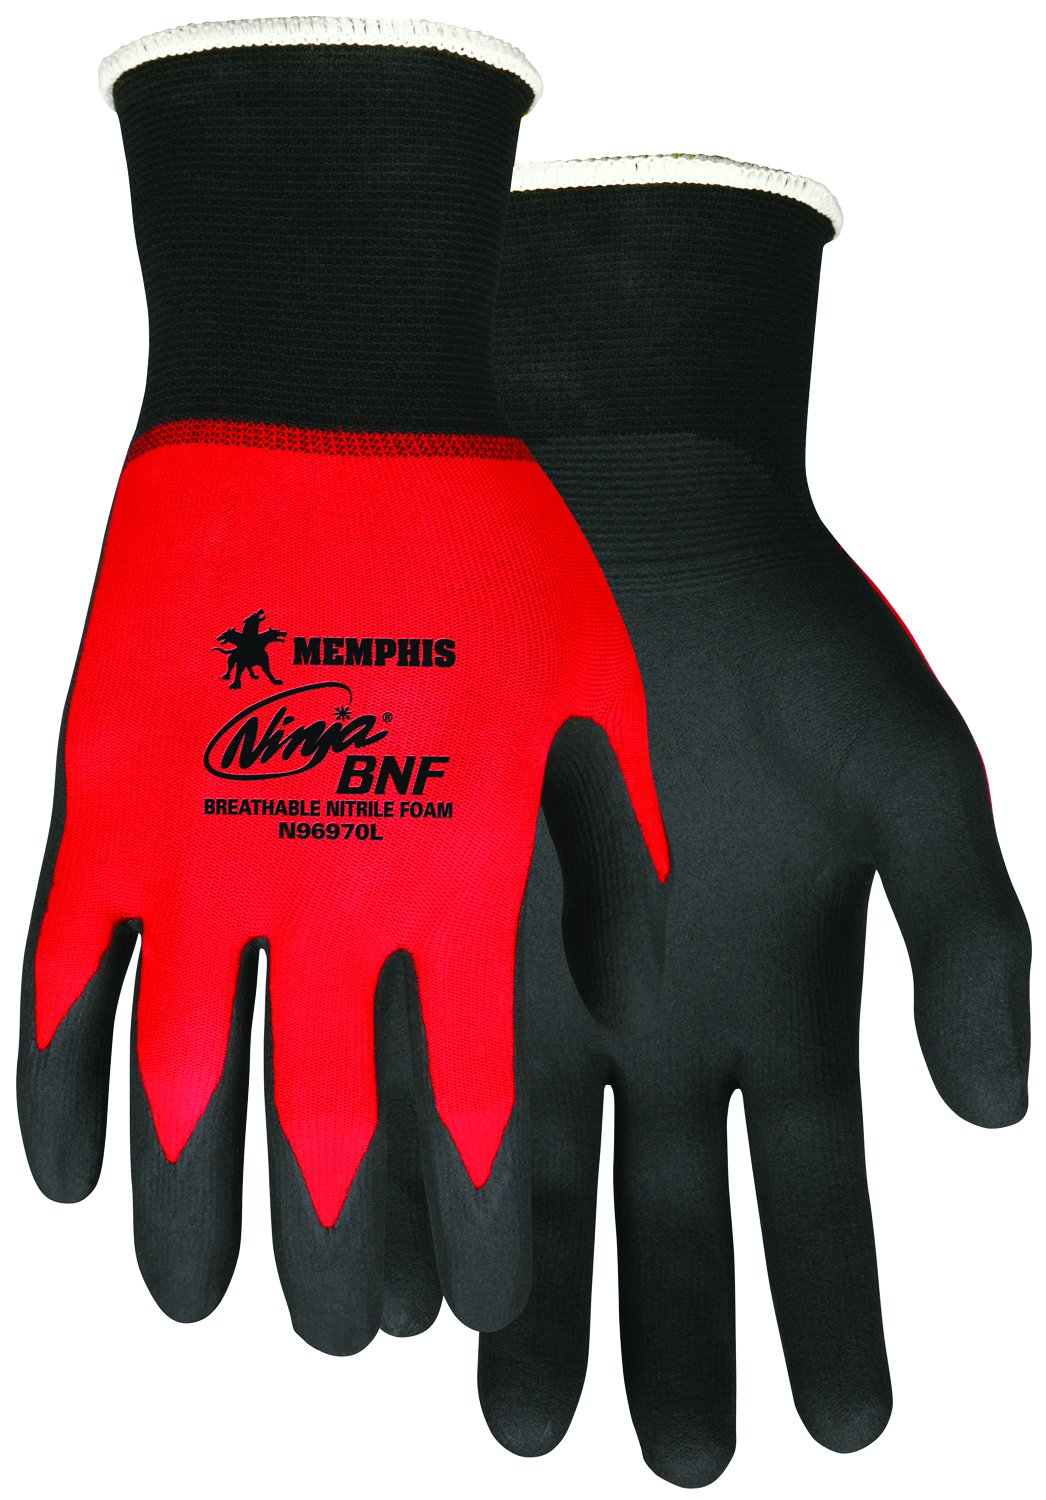 MCR Safety N96970XL Ninja BNF Nitrile Gloves, ANSI Abrasion 4, 18 Gauge Nylon/Spandex Shell with BNF Palm and Fingertip Coating, 1-Pair, X-Large